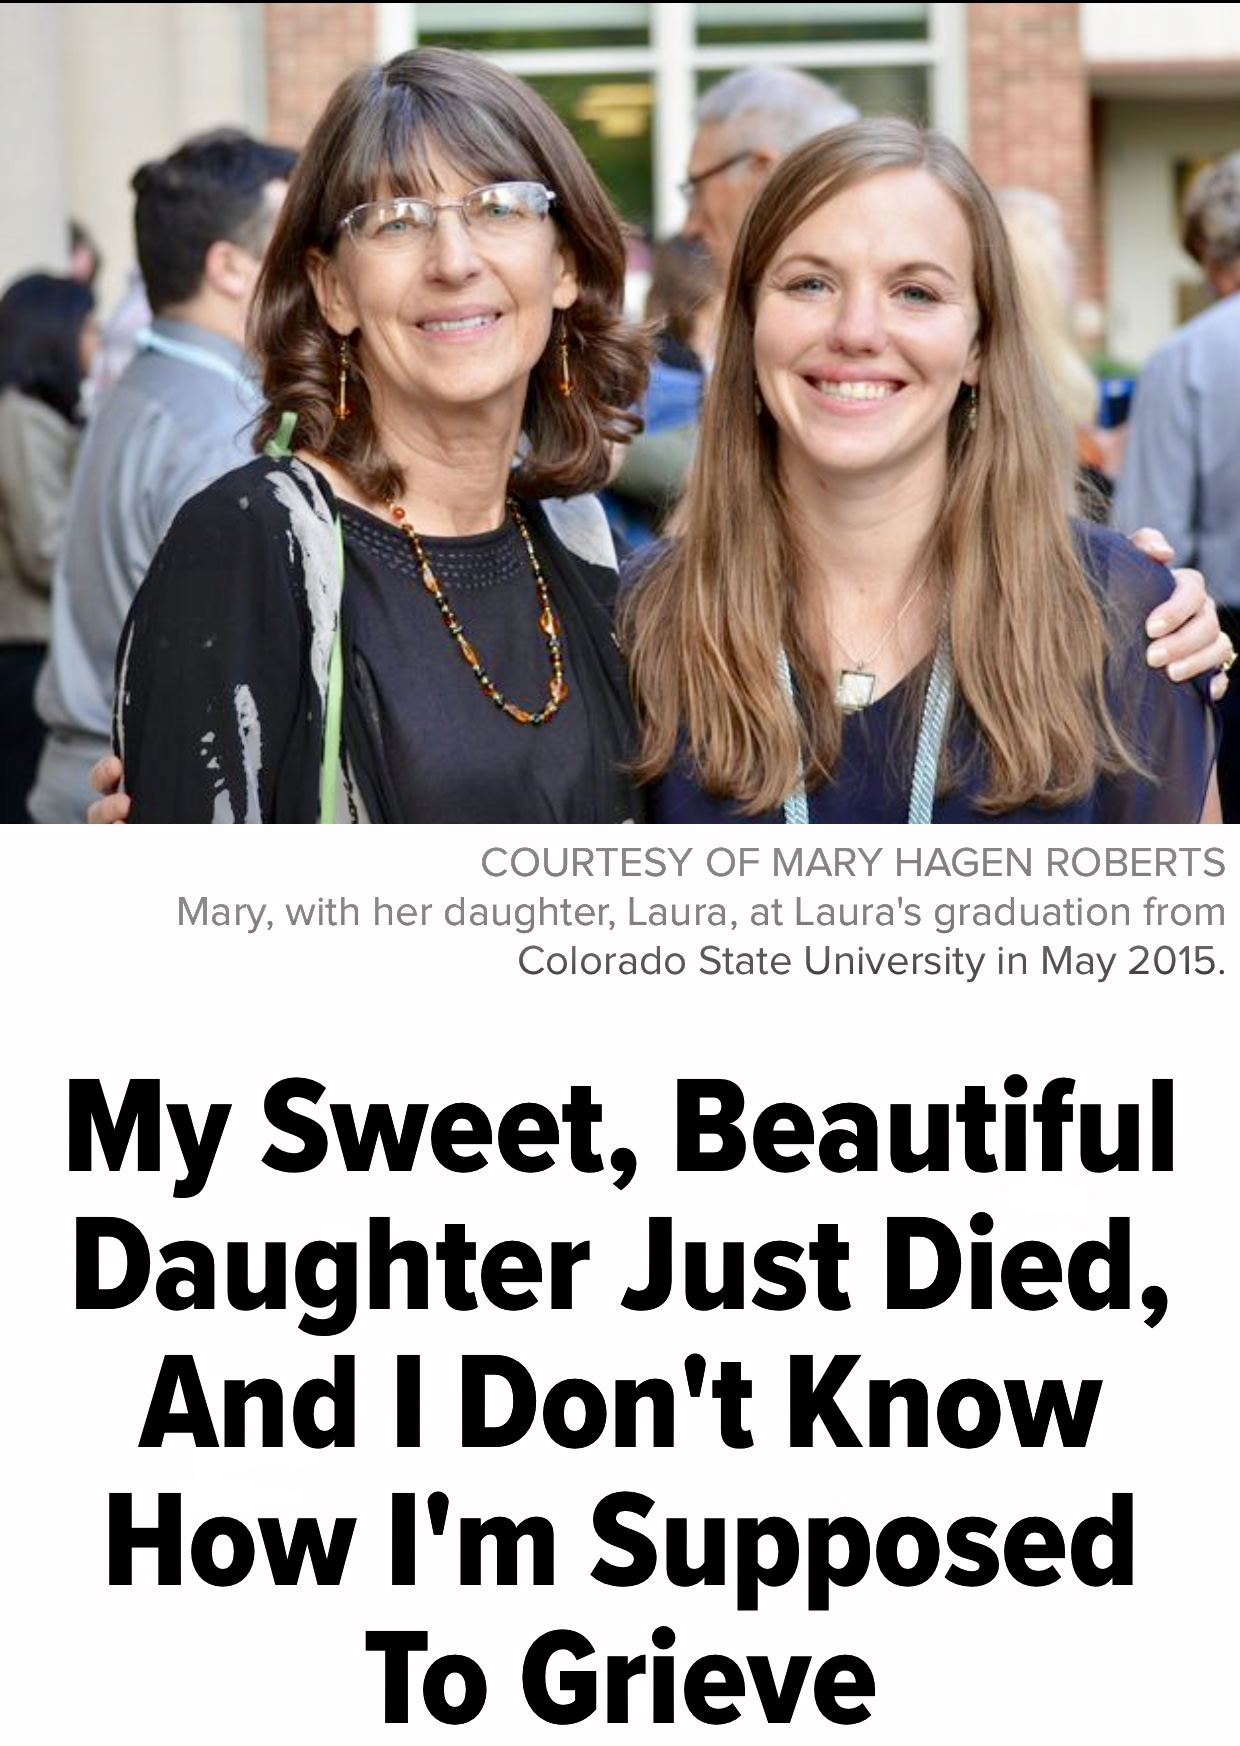 My Sweet, Beautiful Daughter Just Died, And I Don't Know How I'm Supposed To Grieve